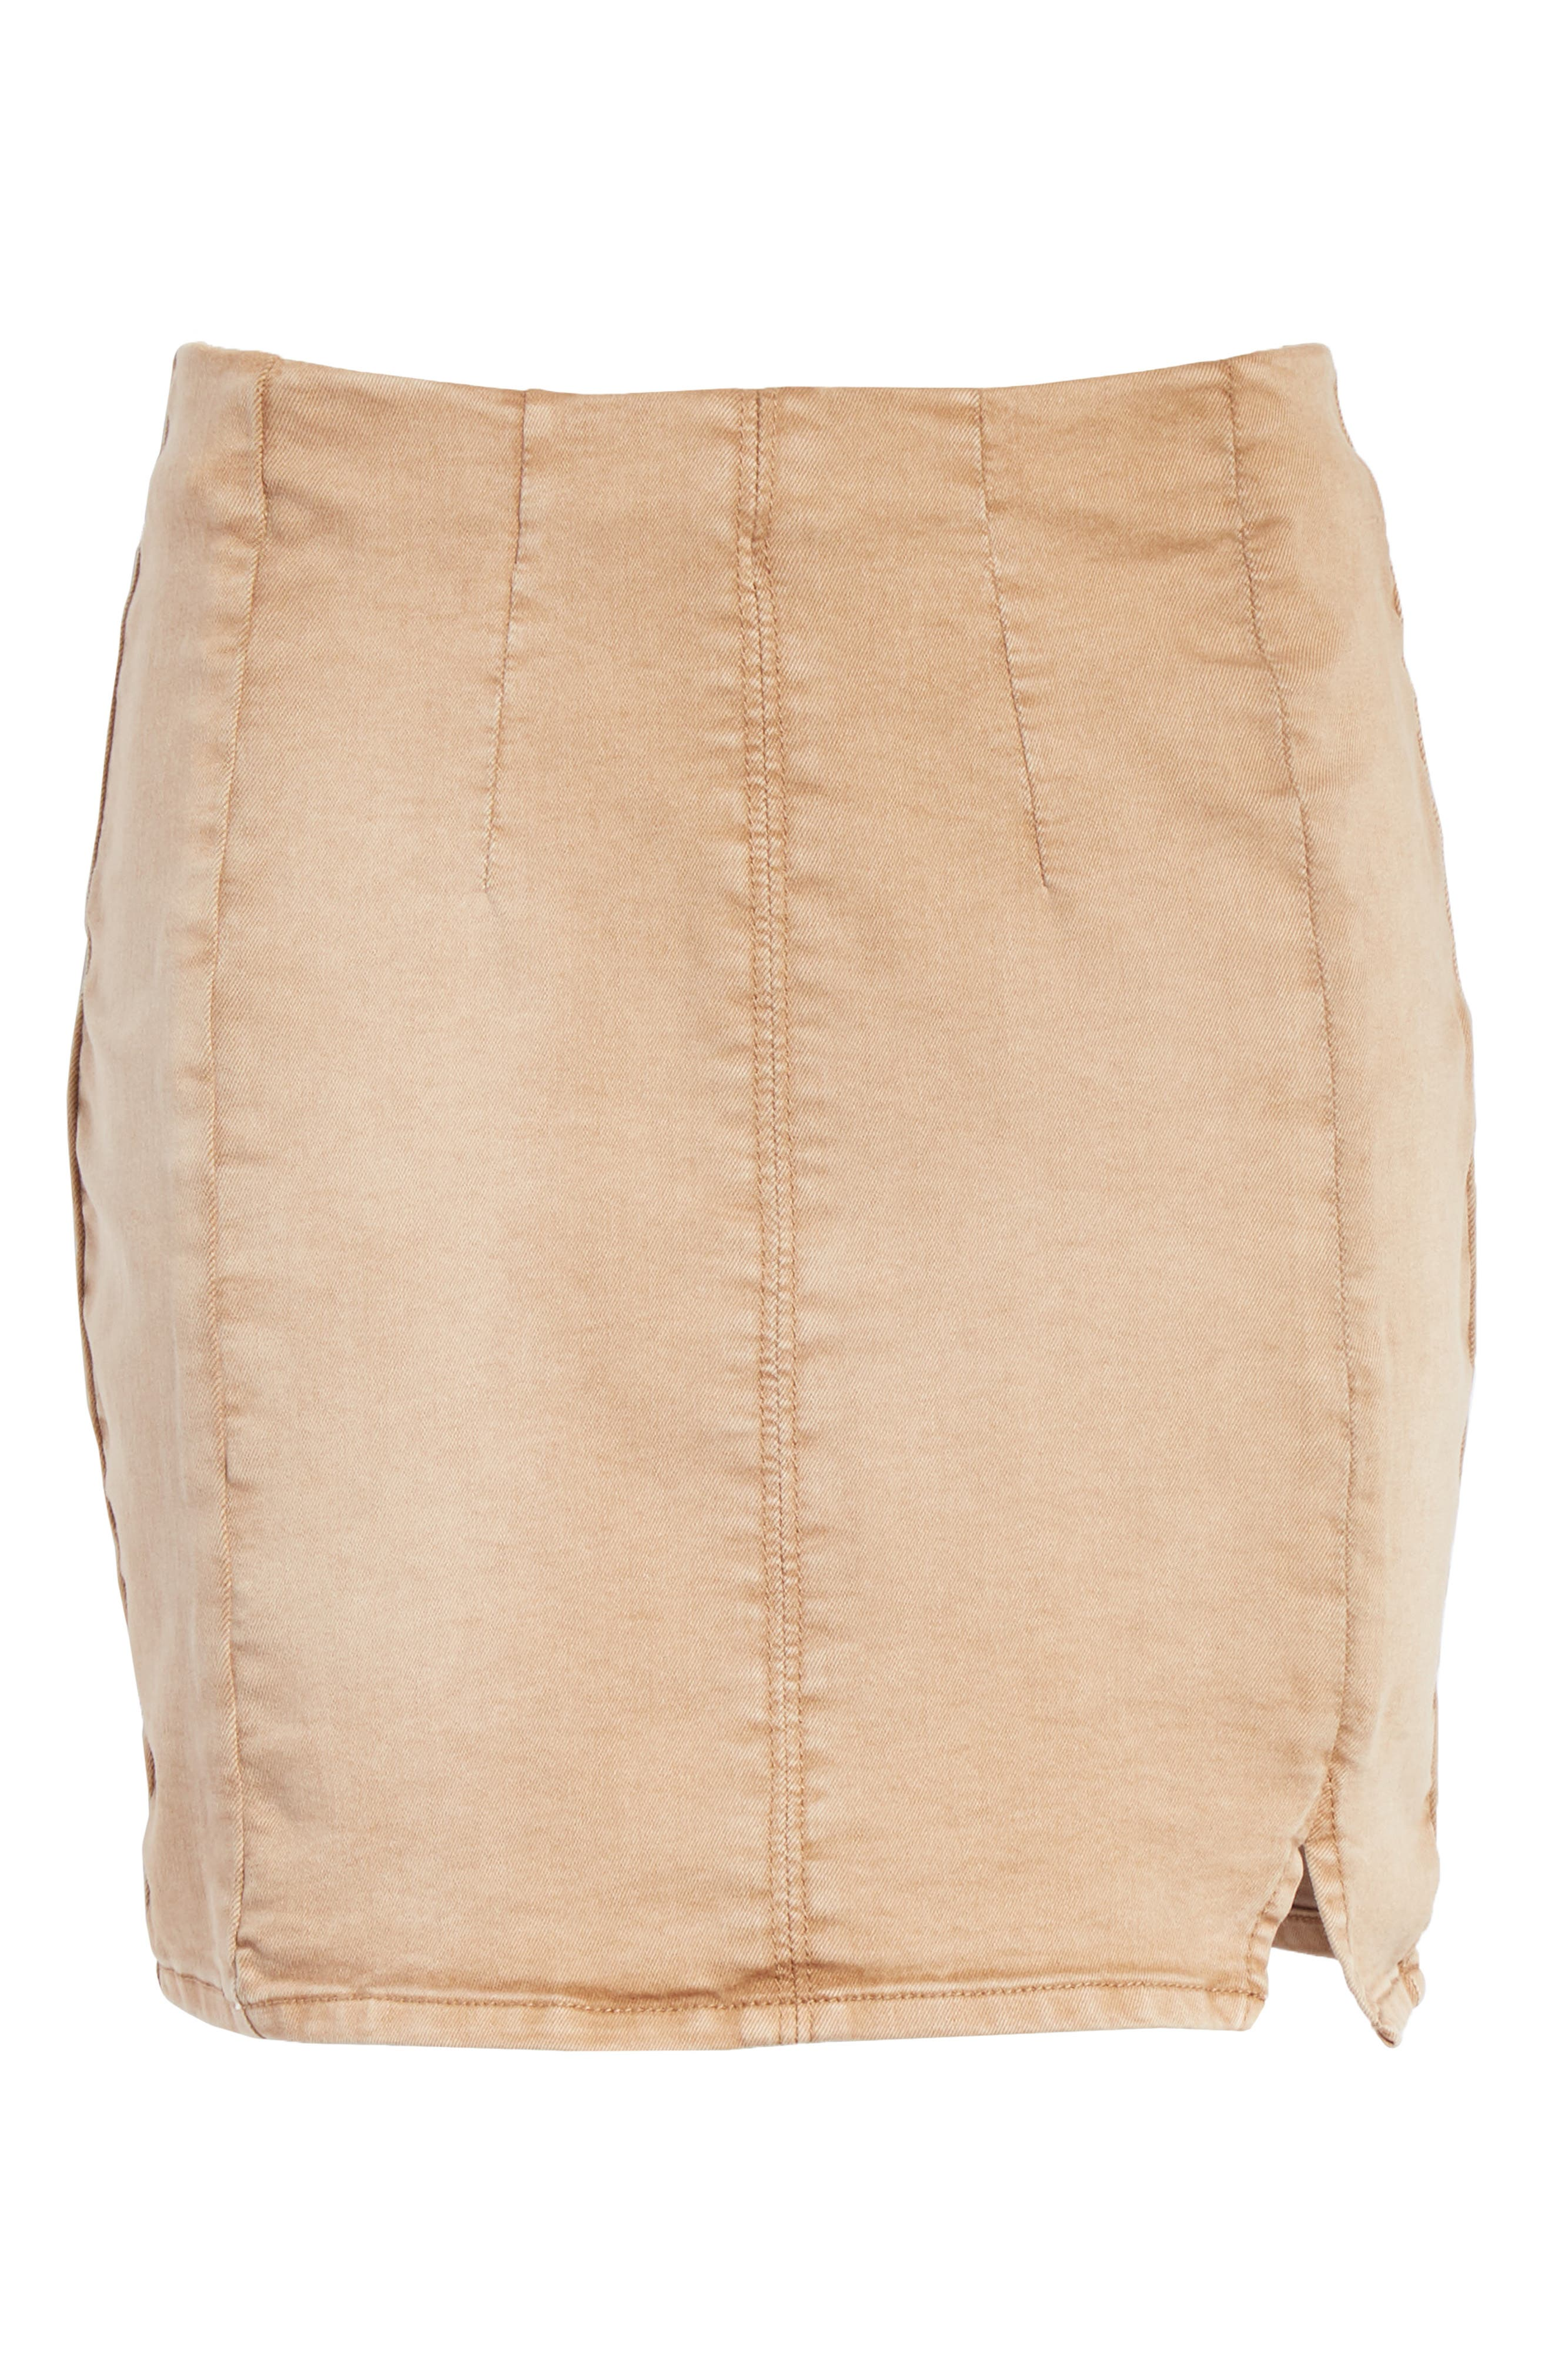 Femme Fatale Pull On Skirt,                             Alternate thumbnail 7, color,                             Khaki